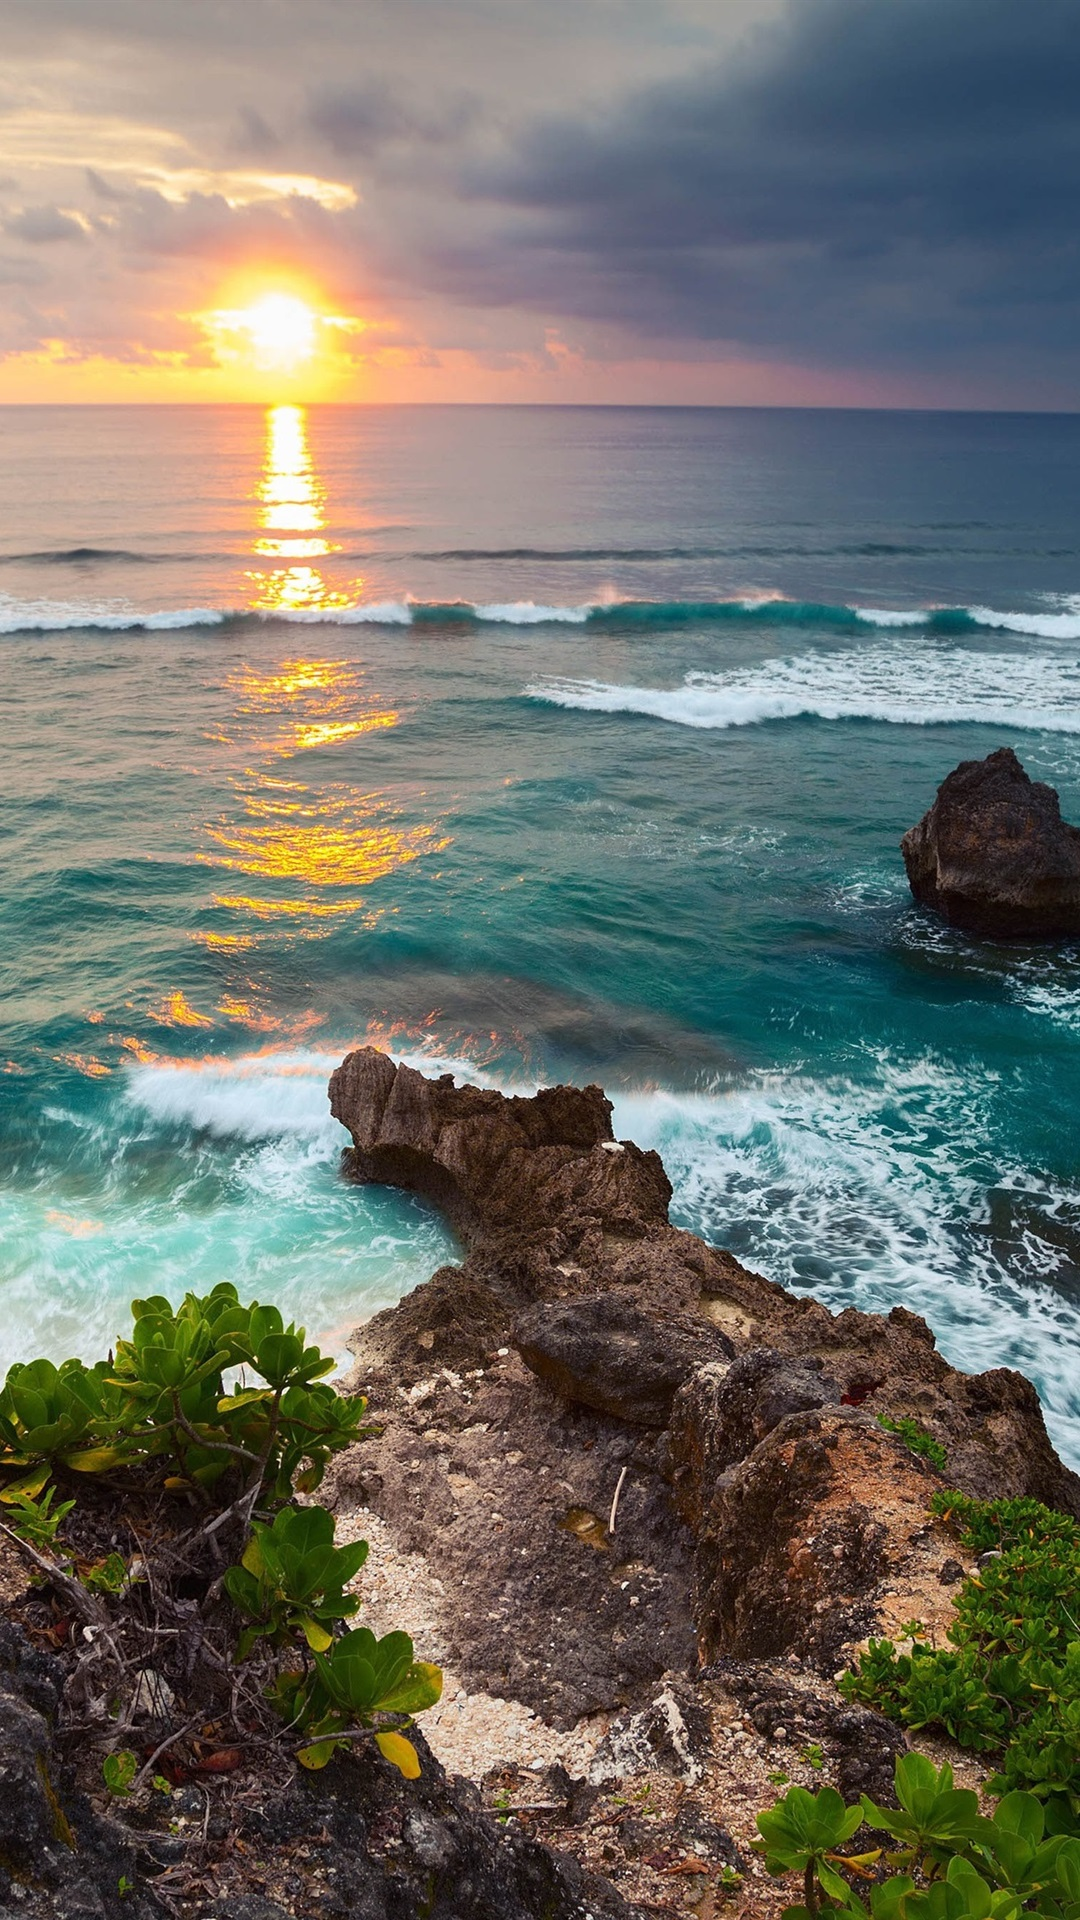 Indonesia Bali Island Tropical Nature Scenery Sea Waves